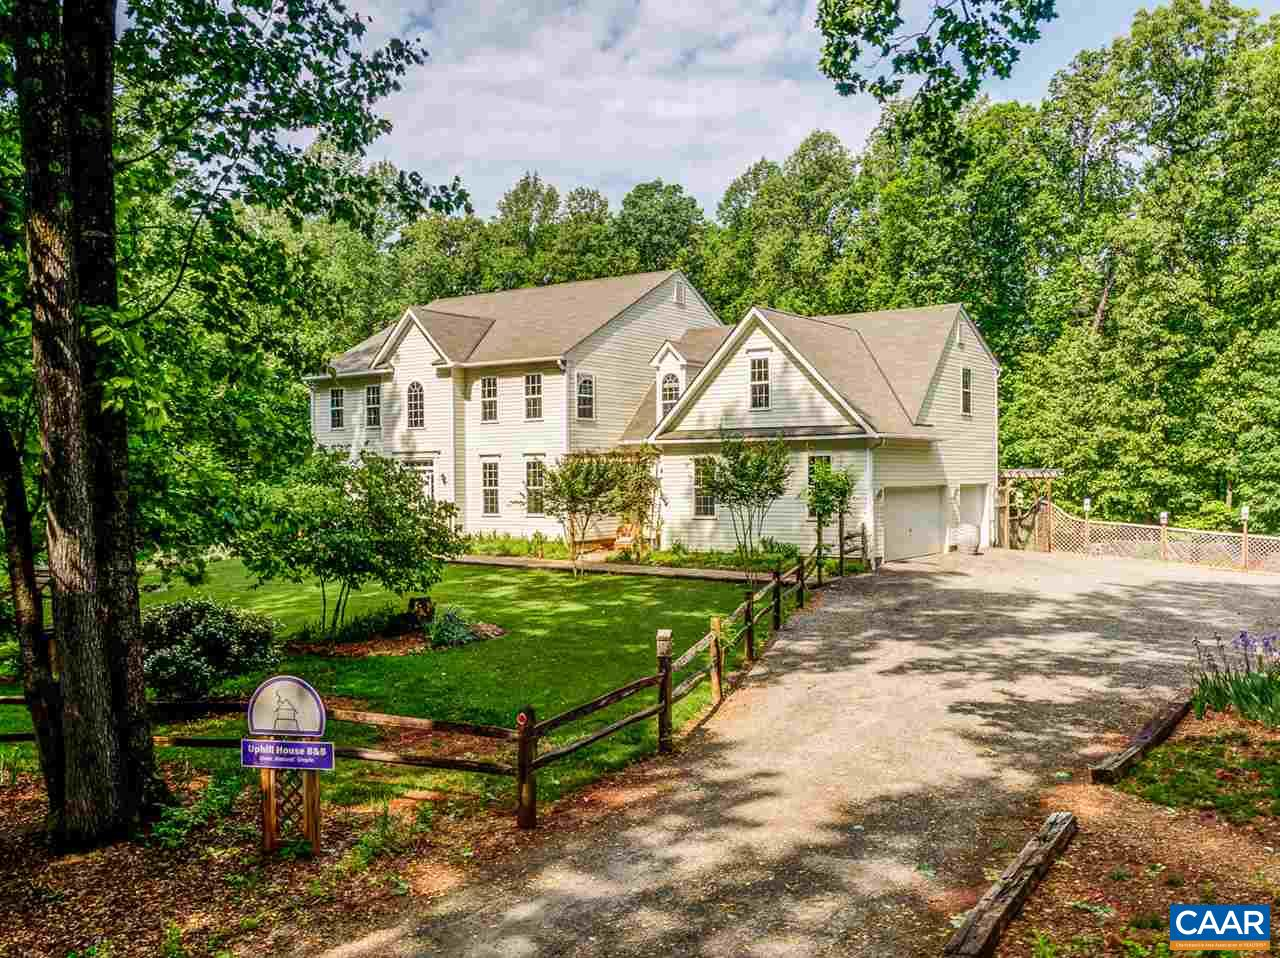 home for sale , MLS #576856, 18248 Buzzard Hollow Rd